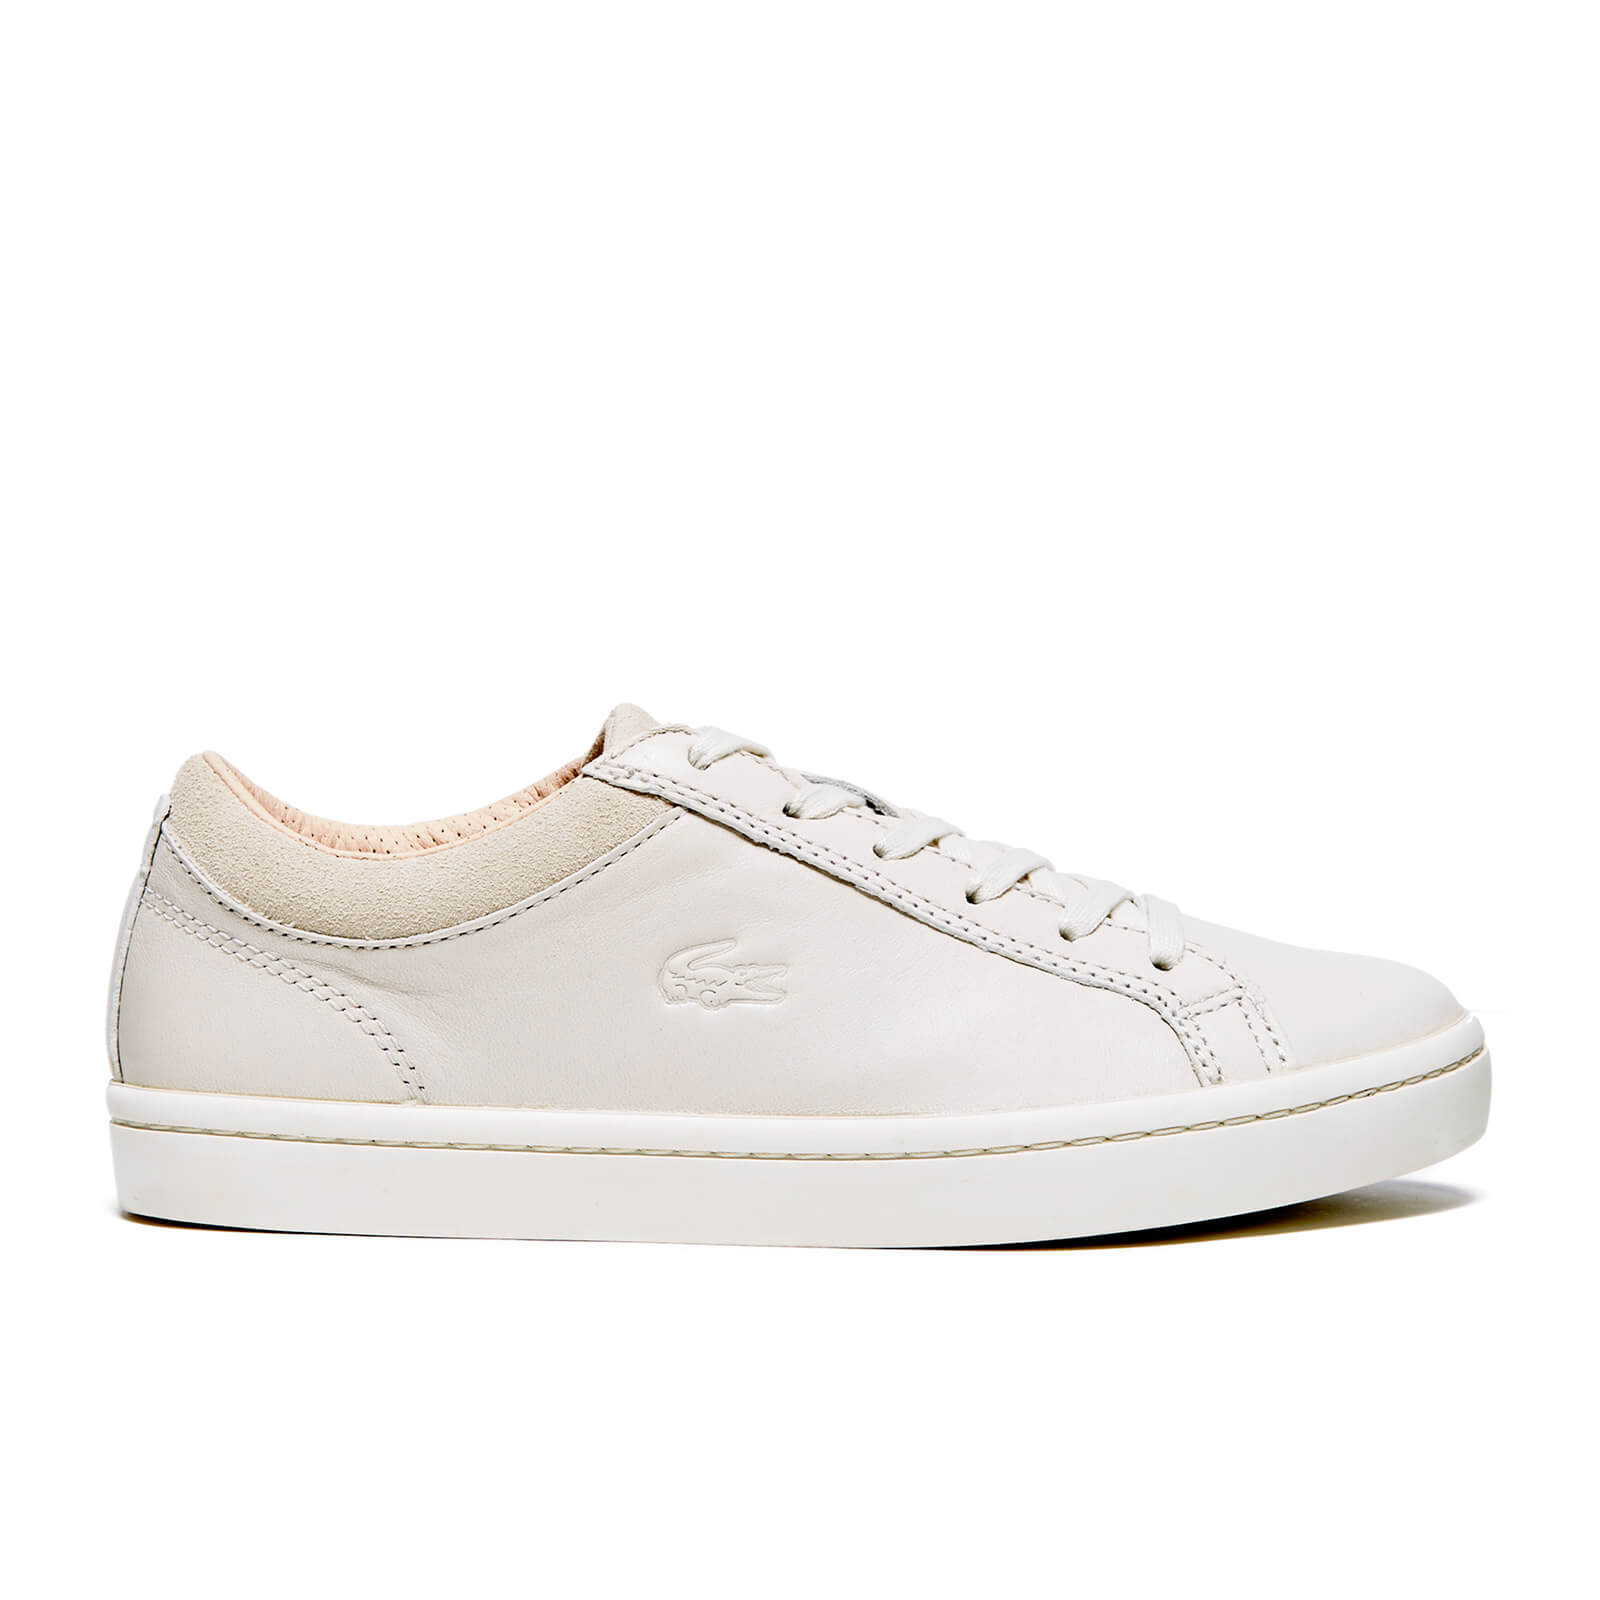 6a487cf68b53 Lacoste Women s Straightset W1 Srw Trainers - Off White - Free UK Delivery  over £50